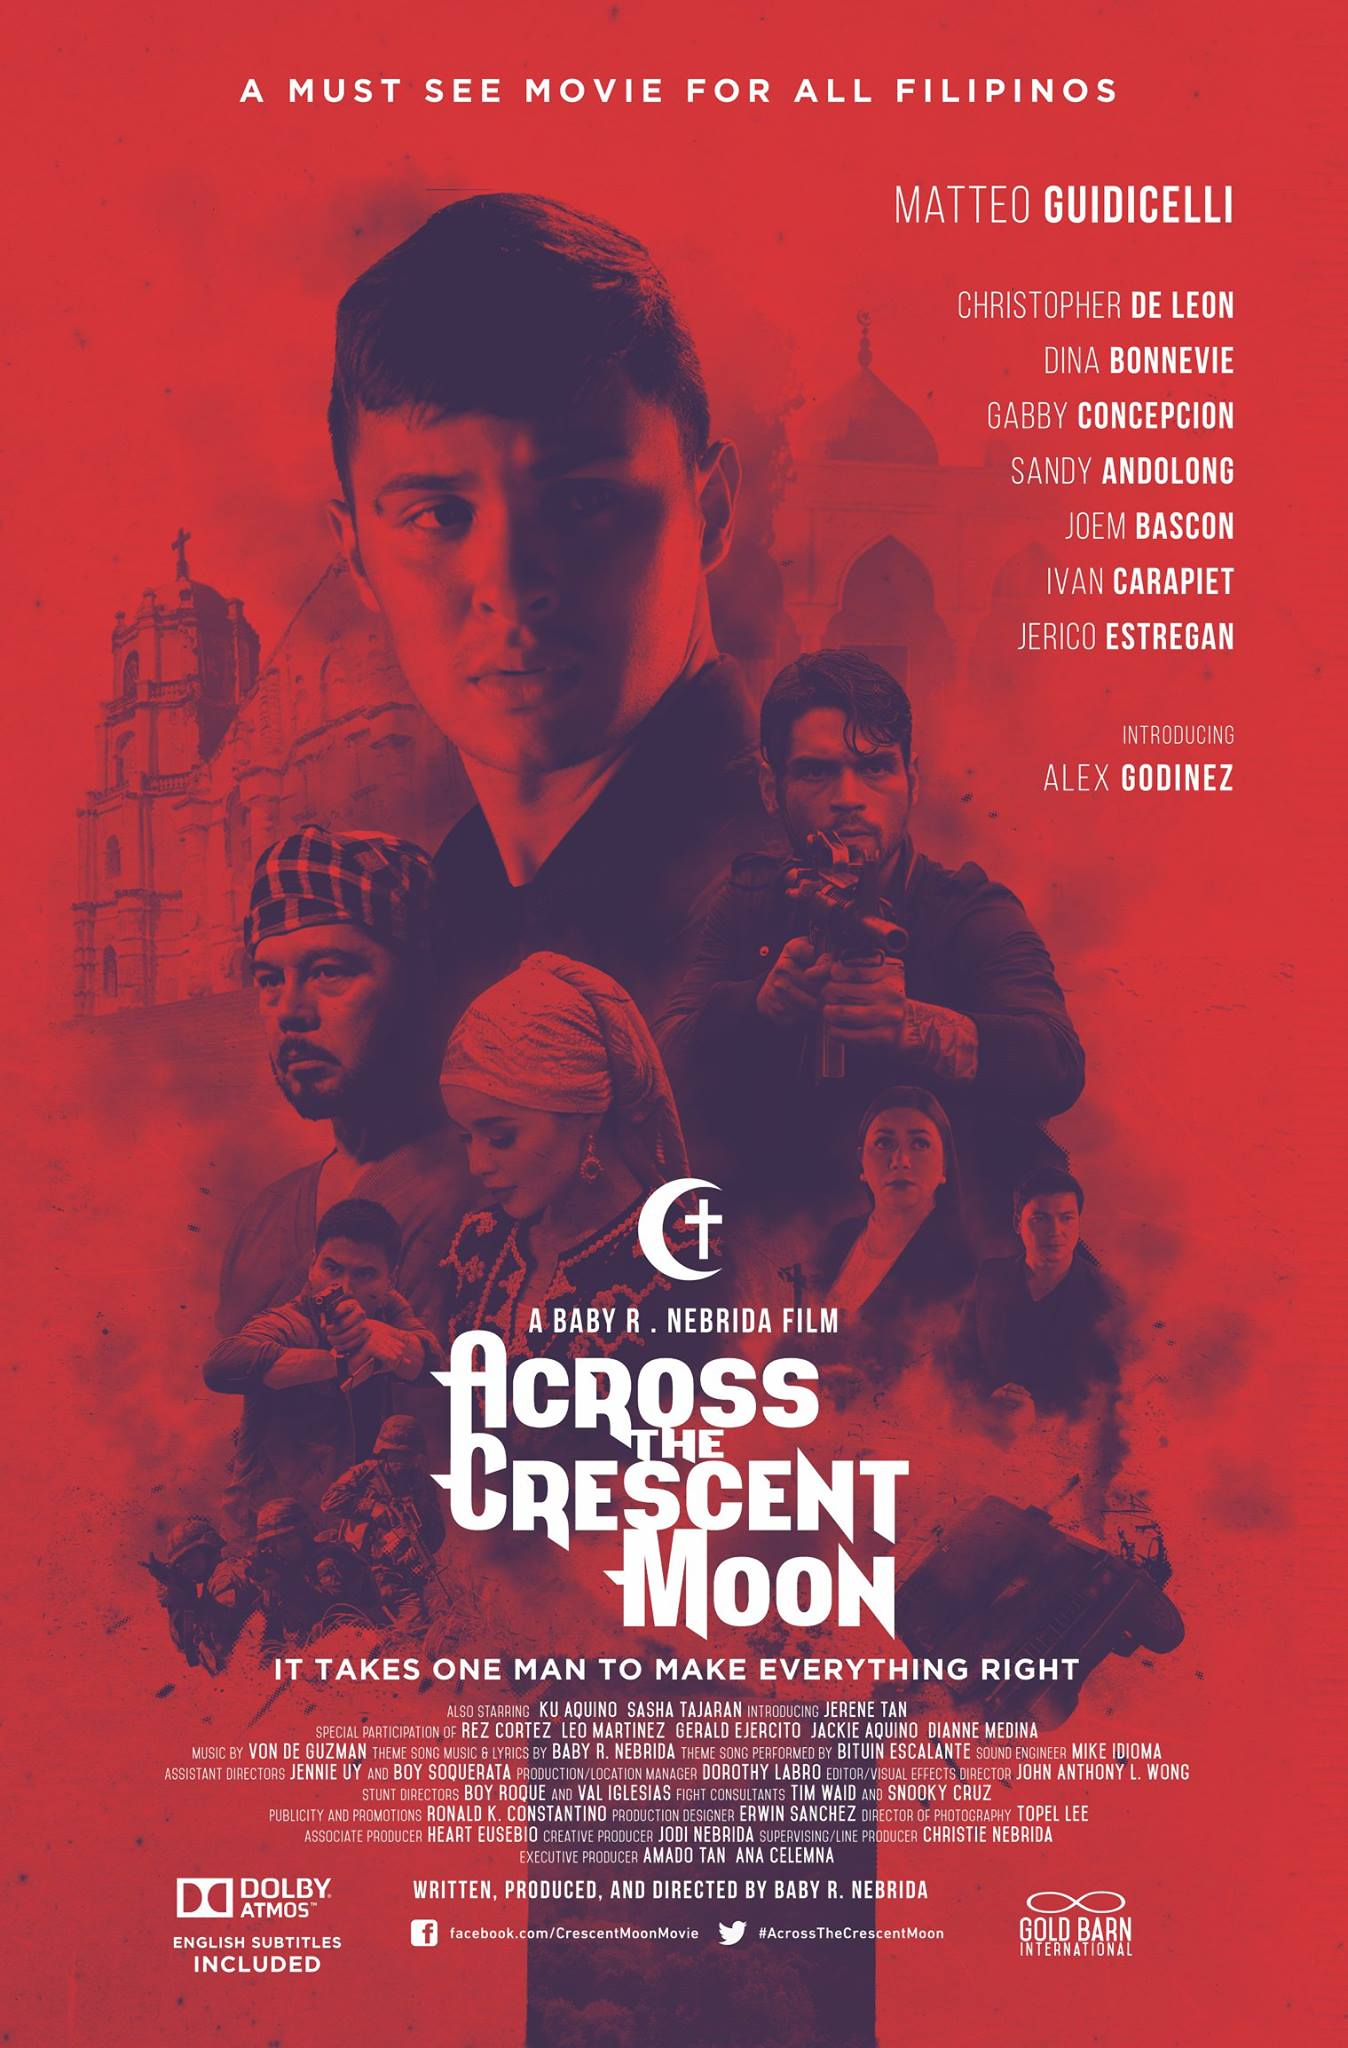 Across The Crescent Moon Page Liked · January 9 · OPENS JANUARY 25, 2017!! WHAT IS THE STORY OF ACROSS THE CRESCENT MOON? The story revolves around a SAF exemplary Agent, Abbas Misani, played by Matteo Guidicelli,a good Muslim who is married to Emma, played by Alex Godinez whose parents with strict Christian upbringing played by Dina Bonnevie and Gabby Concepcion would not accept both Abbas and Emma to their family. Matteo comes from a happy good Muslim family with Karim as his father played by Christopher de Leon and Sitti, as his mother played by Sandy Andolong. The film highlights the menace of human trafficking and about inter-faith relationships. The film intends to impart a strong message that with the tremendous cultural and religious diversity, we are all FILIPINOS, who truly belong to one family of GOD. Though the action-drama story is a creative work of art and fiction, the cases mentioned here have a semblance of truth and are based on true to life encounters of modern day slavery. Definitely, the film, ACROSS THE CRESCENT MOON, does not only entertain, but it serves as an inspiration and enlightenment to what Filipinos should value most – lasting peace, love, preservation of family unity, and displaying the respectability and acceptability of each other's faith. Most of all, to embrace a strong sense of mission to please God or Allah and instilling in every Filipino's heart and mind – true patriotism in loving and serving the country well in every chosen field of endeavor people choose, should be in our spirit. This powerful inspiring film strengthens family ties and deepens the faith of people in God as we see the characters in the story transformed into a strong solid family renewal of ties and love. This film is an enriching, enlightening, entertaining and exciting action/ drama that moves the heart and uplifts the soul. To many who have seen it, they say that it has an indefinable quality that can heal the viewer emotionally, psychologic